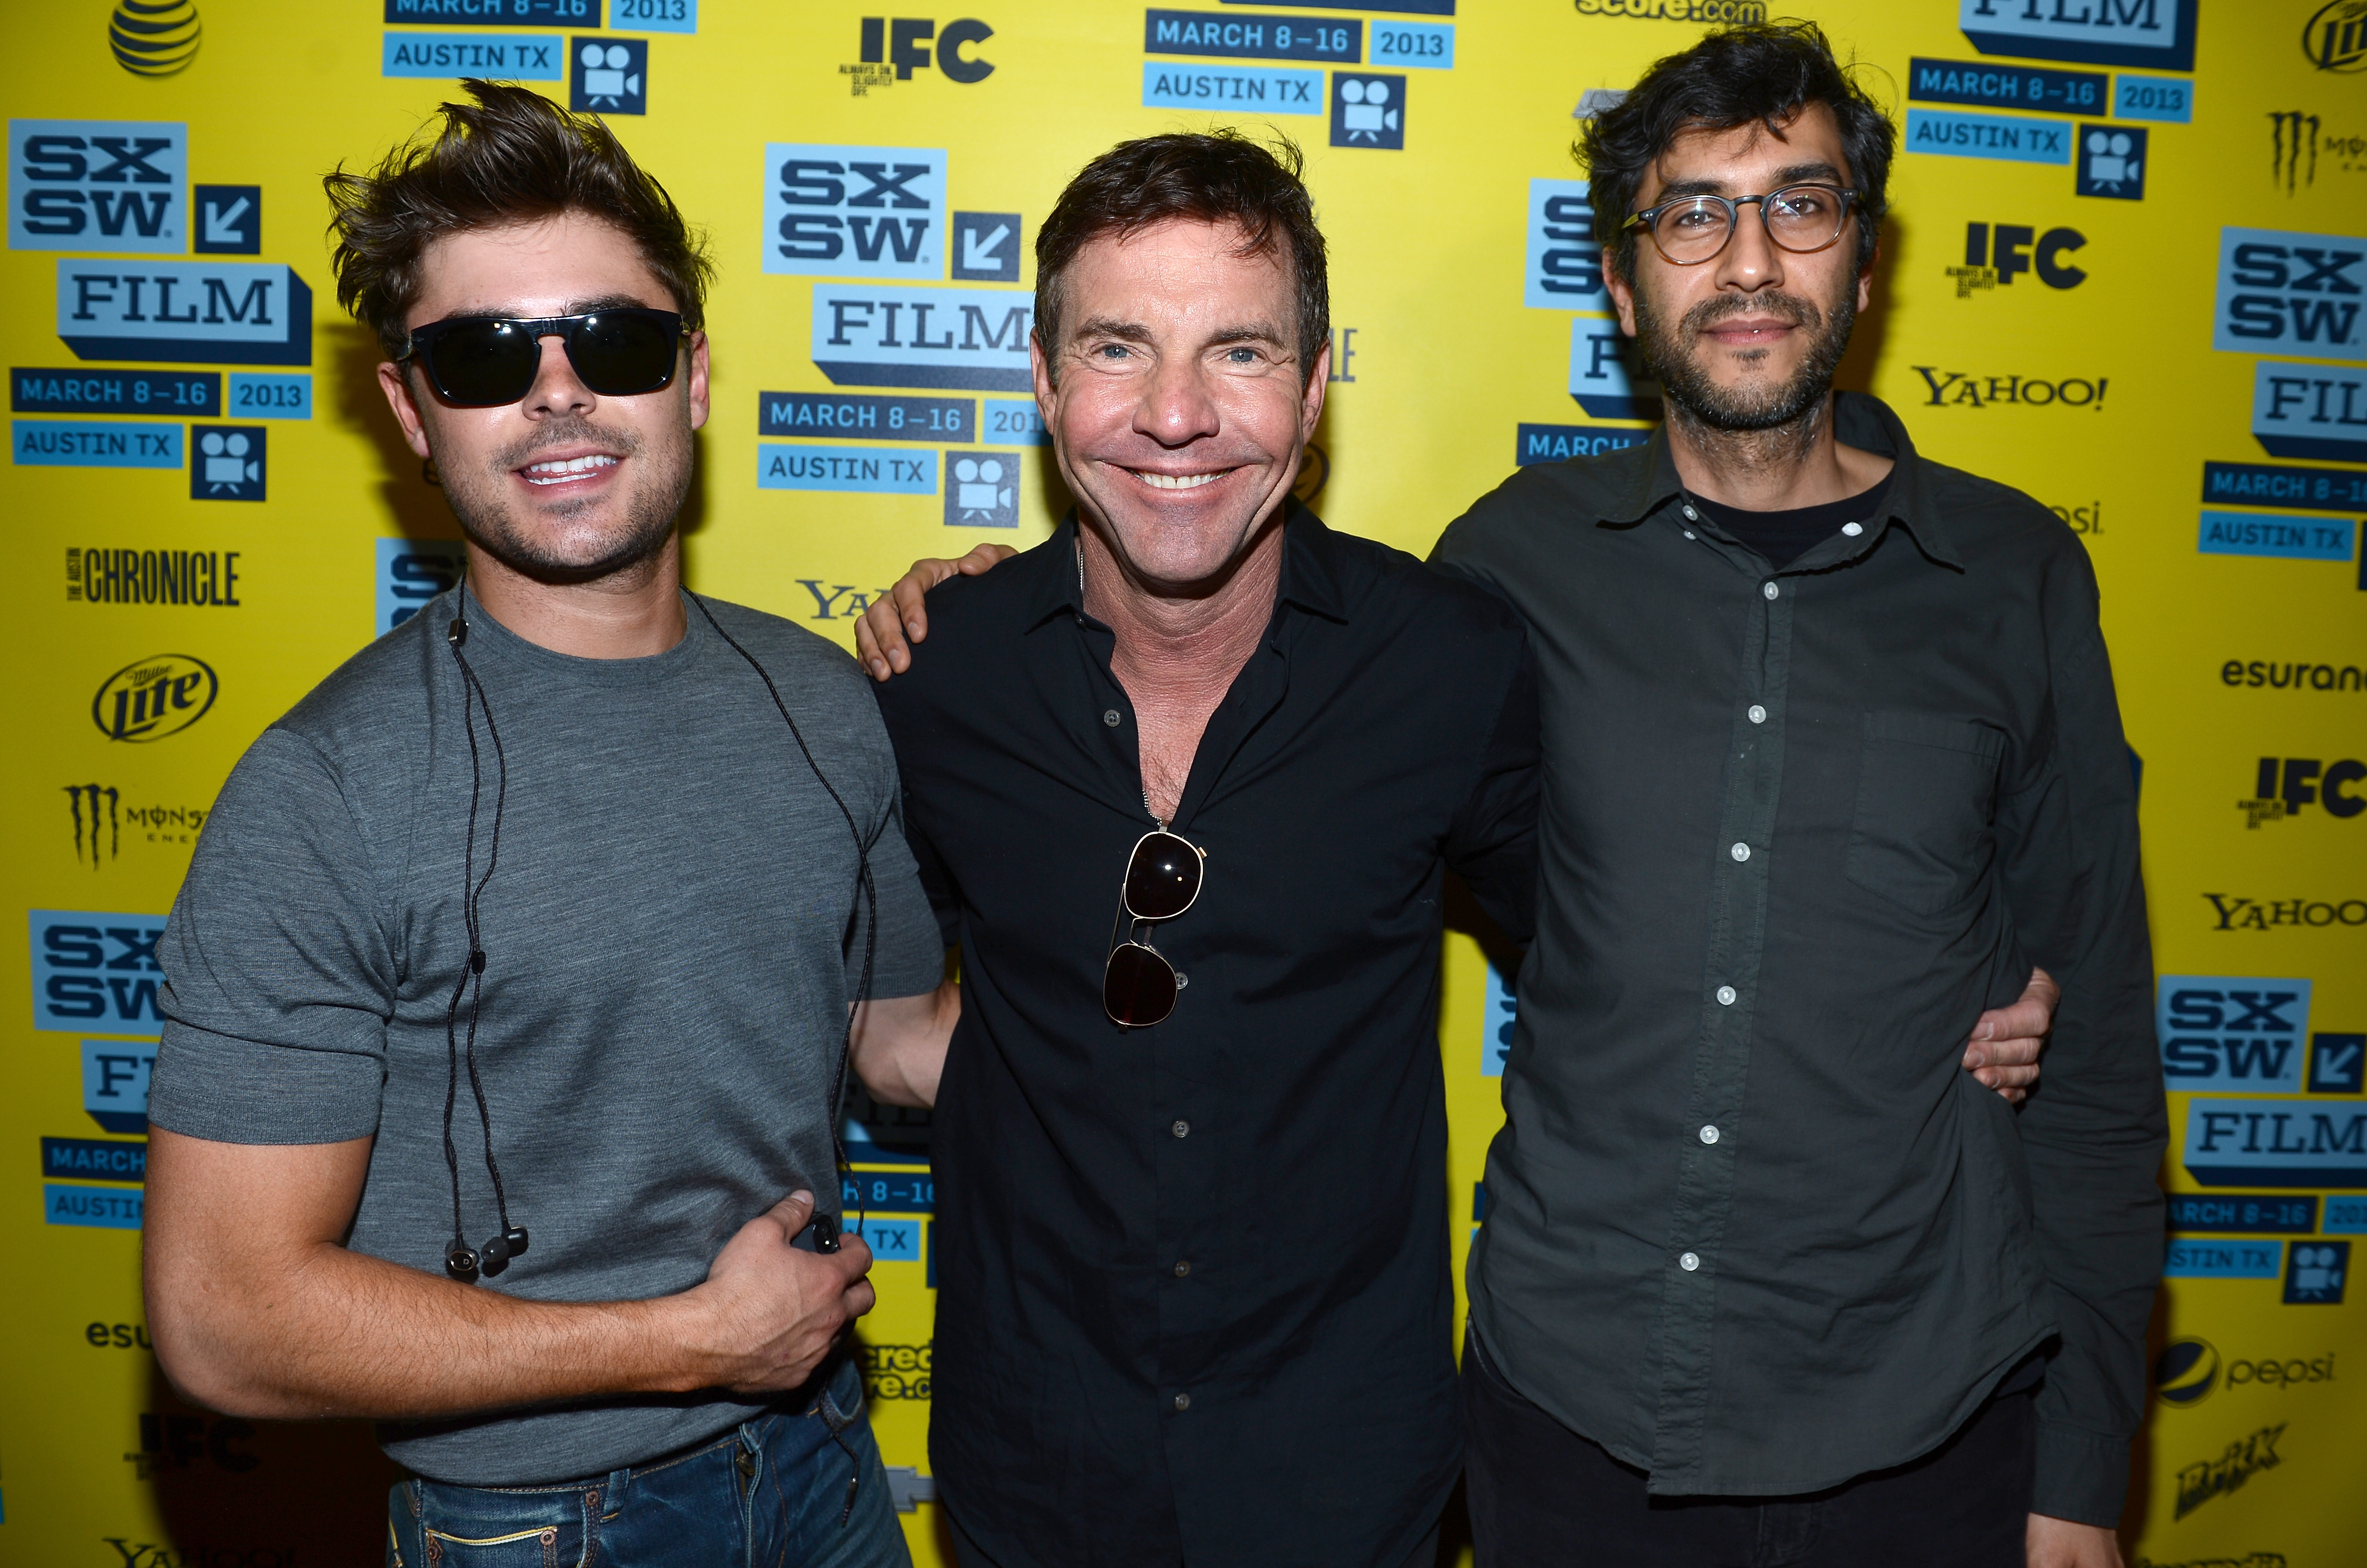 Zac Efron, Dennis Quaid, and Ramin Bahrani linked up for the At Any Price premiere at SXSW.